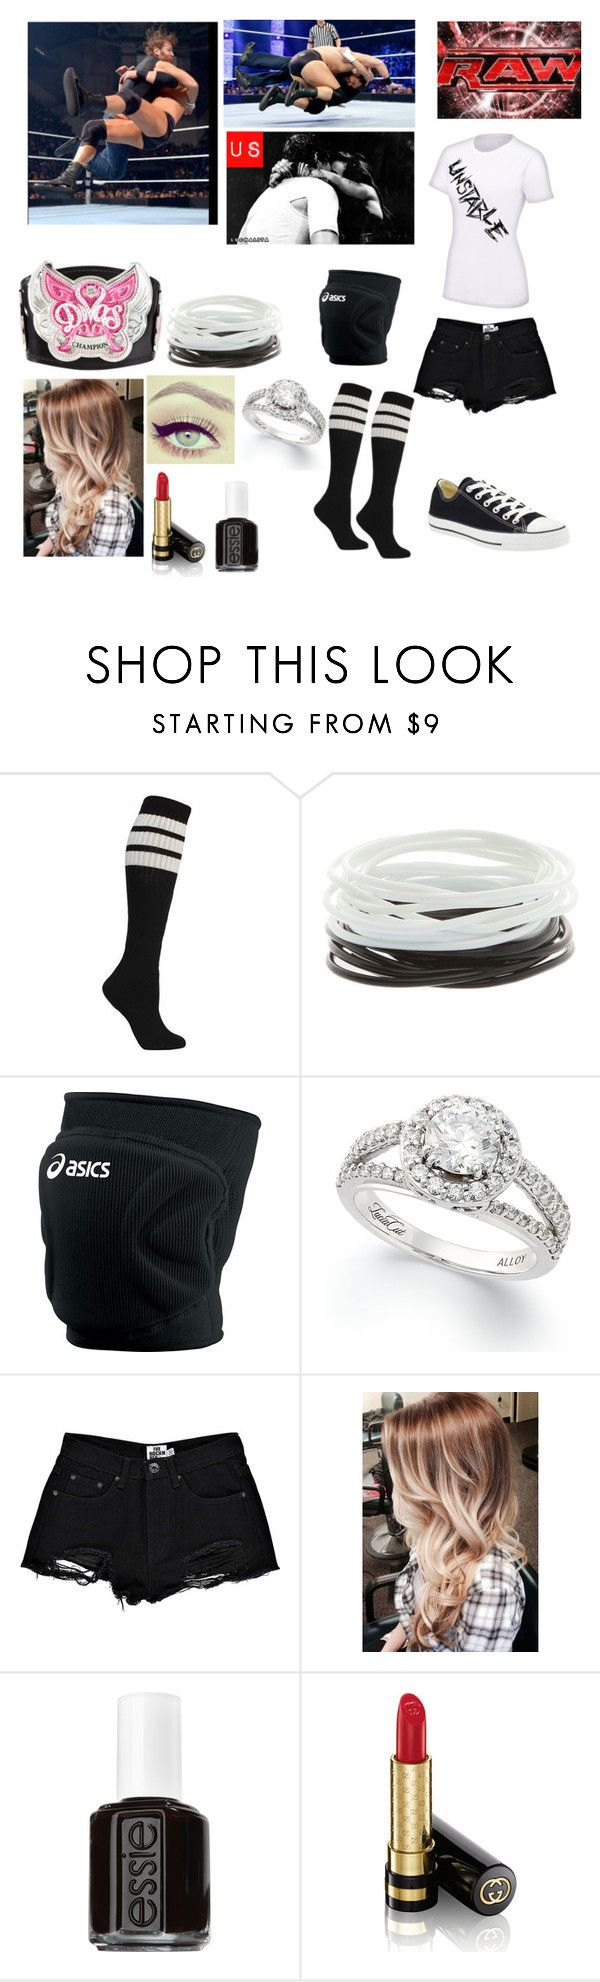 """""""Monday Night Raw - Coming Out And Kissing Dean After His Win Over Curtis Axel"""" by caton-486 ❤ liked on Polyvore featuring Axel, Asics, Boohoo, Converse, Monday, Free People, Essie and Gucci"""